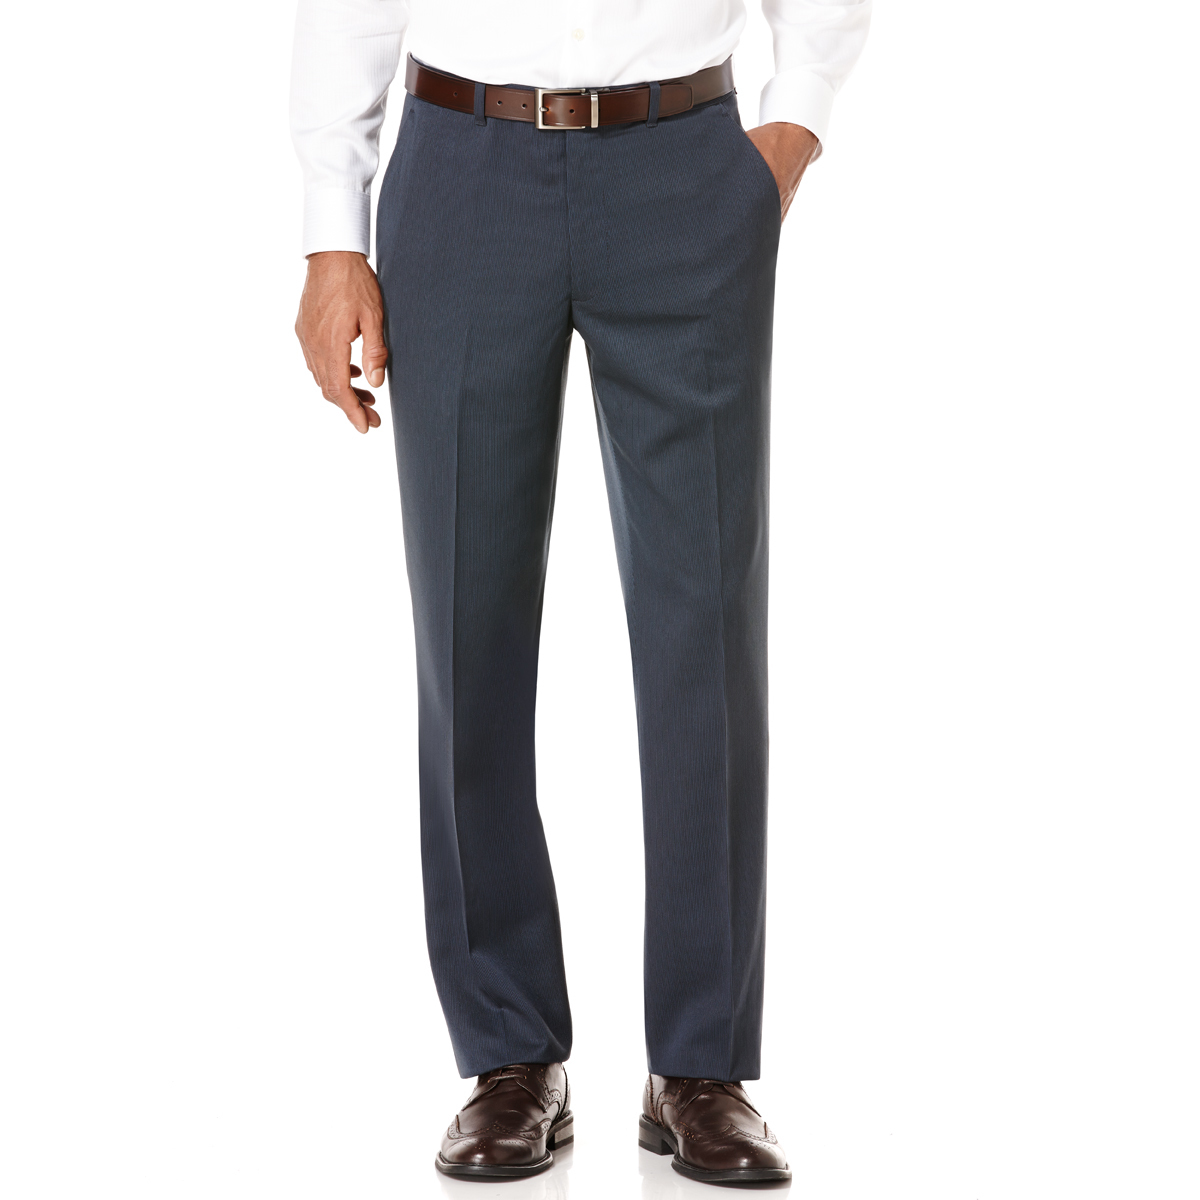 BYRON CUSTOM TAILORS | Formal Pants